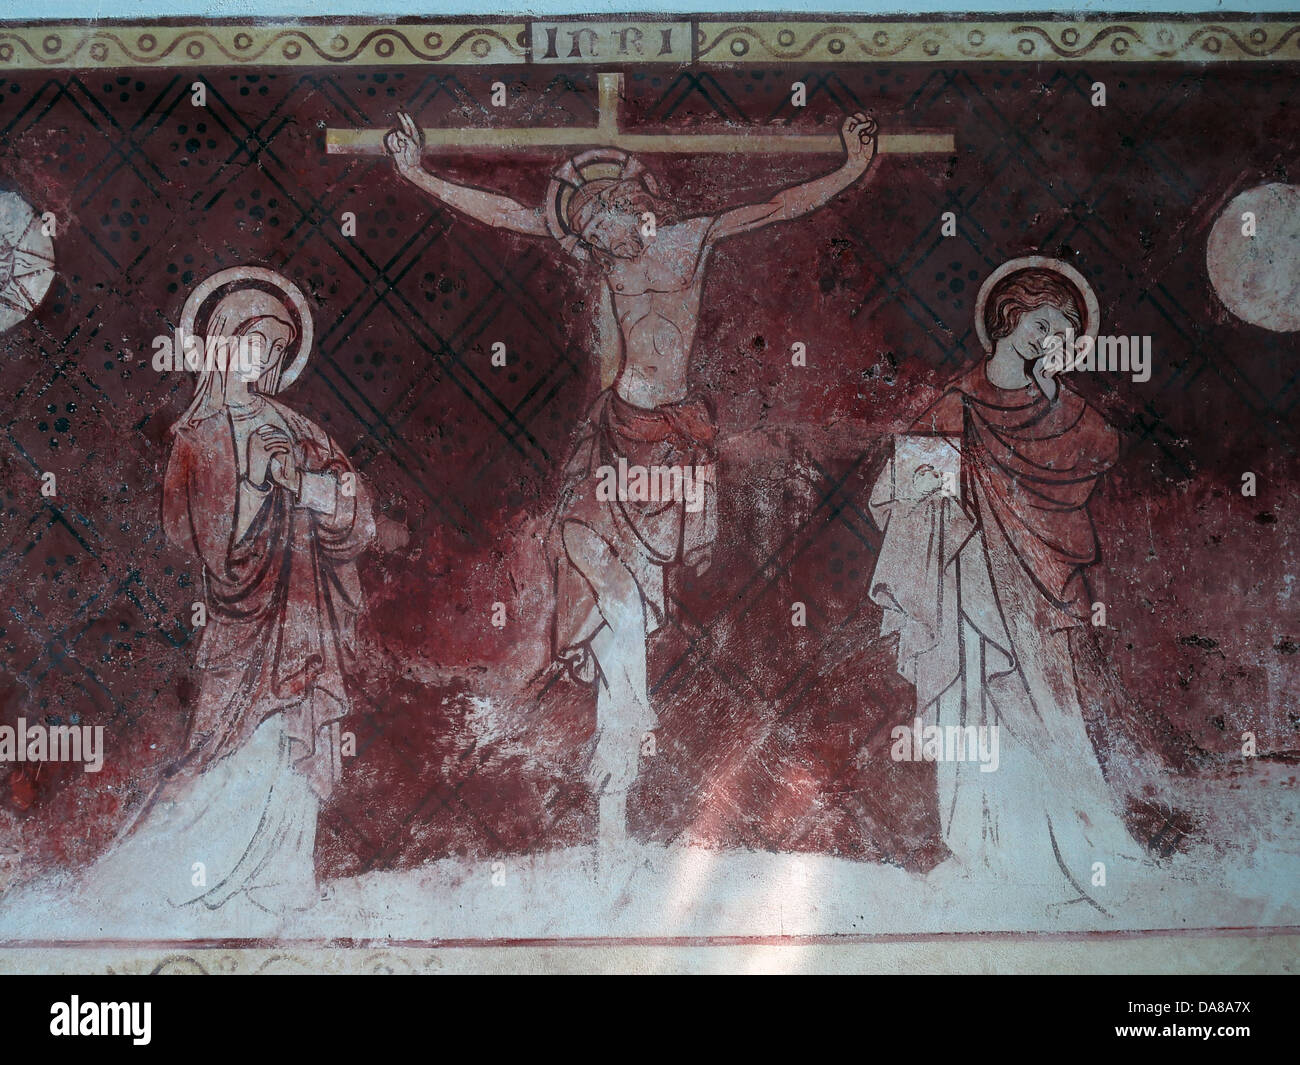 Detail,of,restored,14th,century,wallpainting,forming,the,altarpiece,in,the,parish,aisle,at,Dorchester,abbey,red,dorchester-on-thames,oxen,church,aisle,altar,main,on,thames,crucification,crucifixion,Peoples,peoples,chapel,the,original,14th,century,St,mary,John,sun,moon,gotonysmith relics reproduced christ Christianity oxford oxfordshire,Buy Pictures of,Buy Images Of